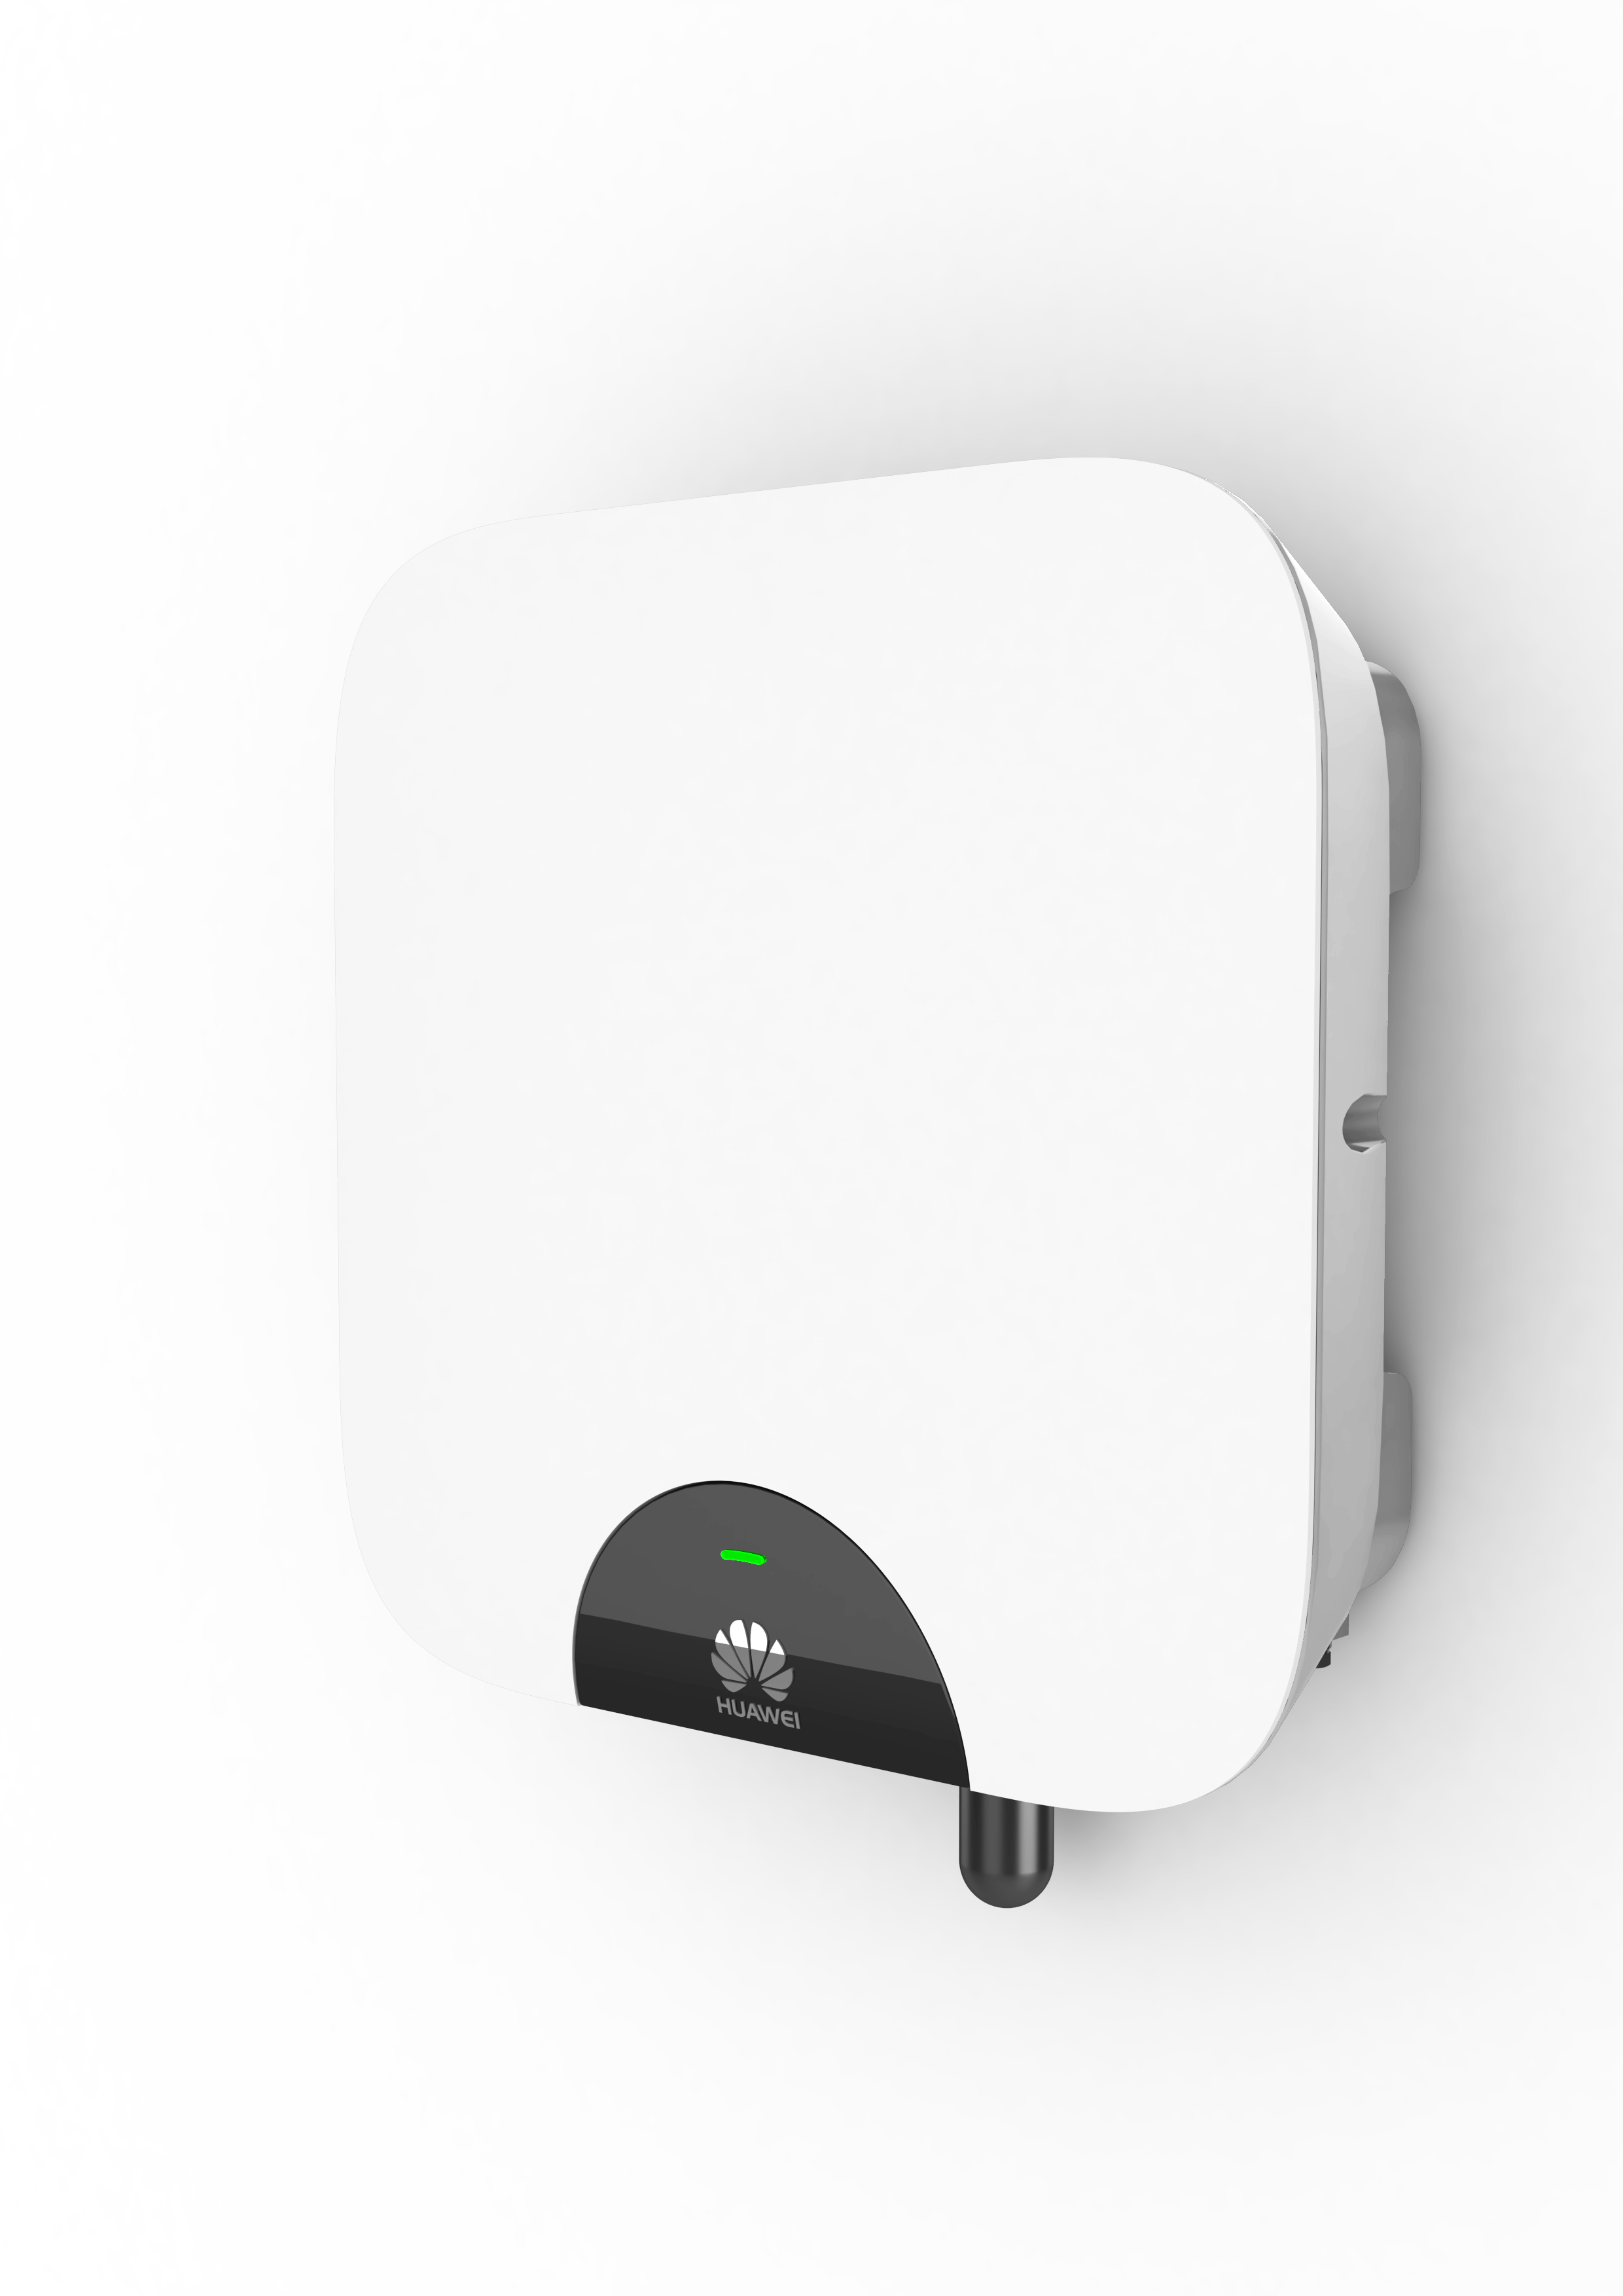 The 'FusionHome Smart Energy Solution' is designed from the bottom-up to be a 'one-4-all' (one inverter SKU for all) residential application scenarios  that offers a number of key capabilities for future residential home needs such as power optimization, energy storage and smart home integration in a simplified plug & play configuration. Image: Huawei